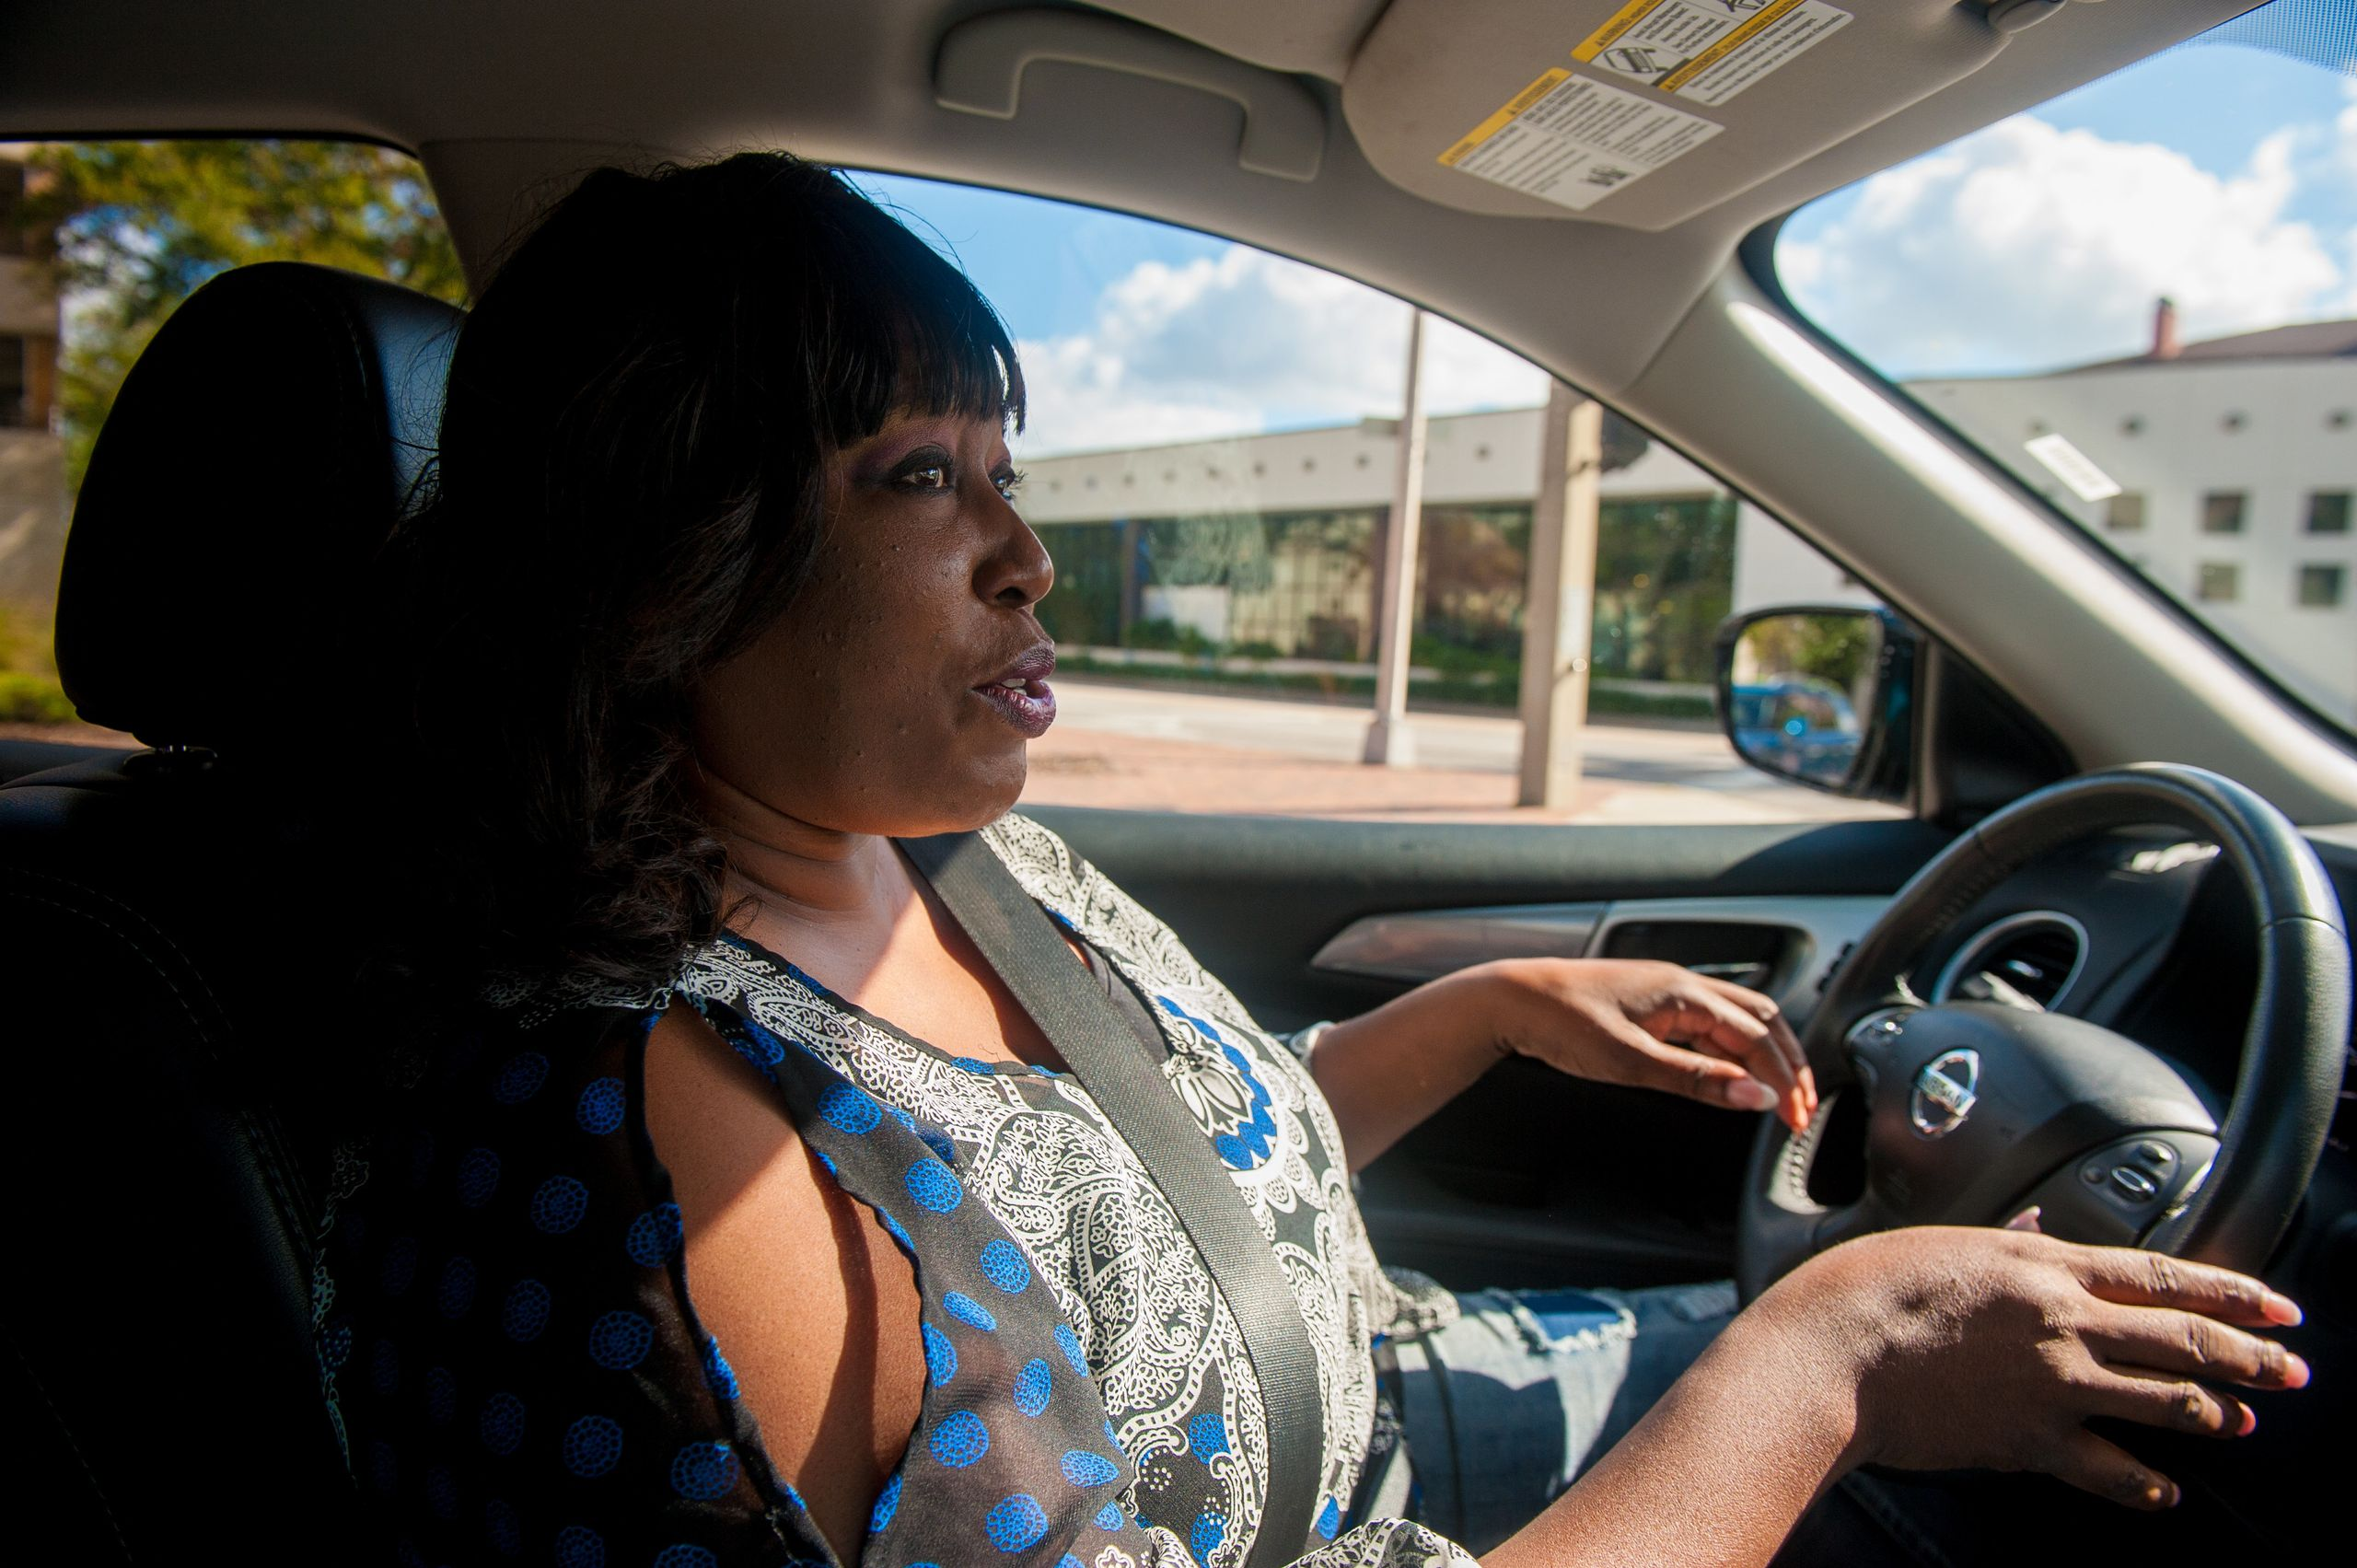 Lawanna Gelzer, an environmental justice activist, tours the Parramore neighborhood in her car.